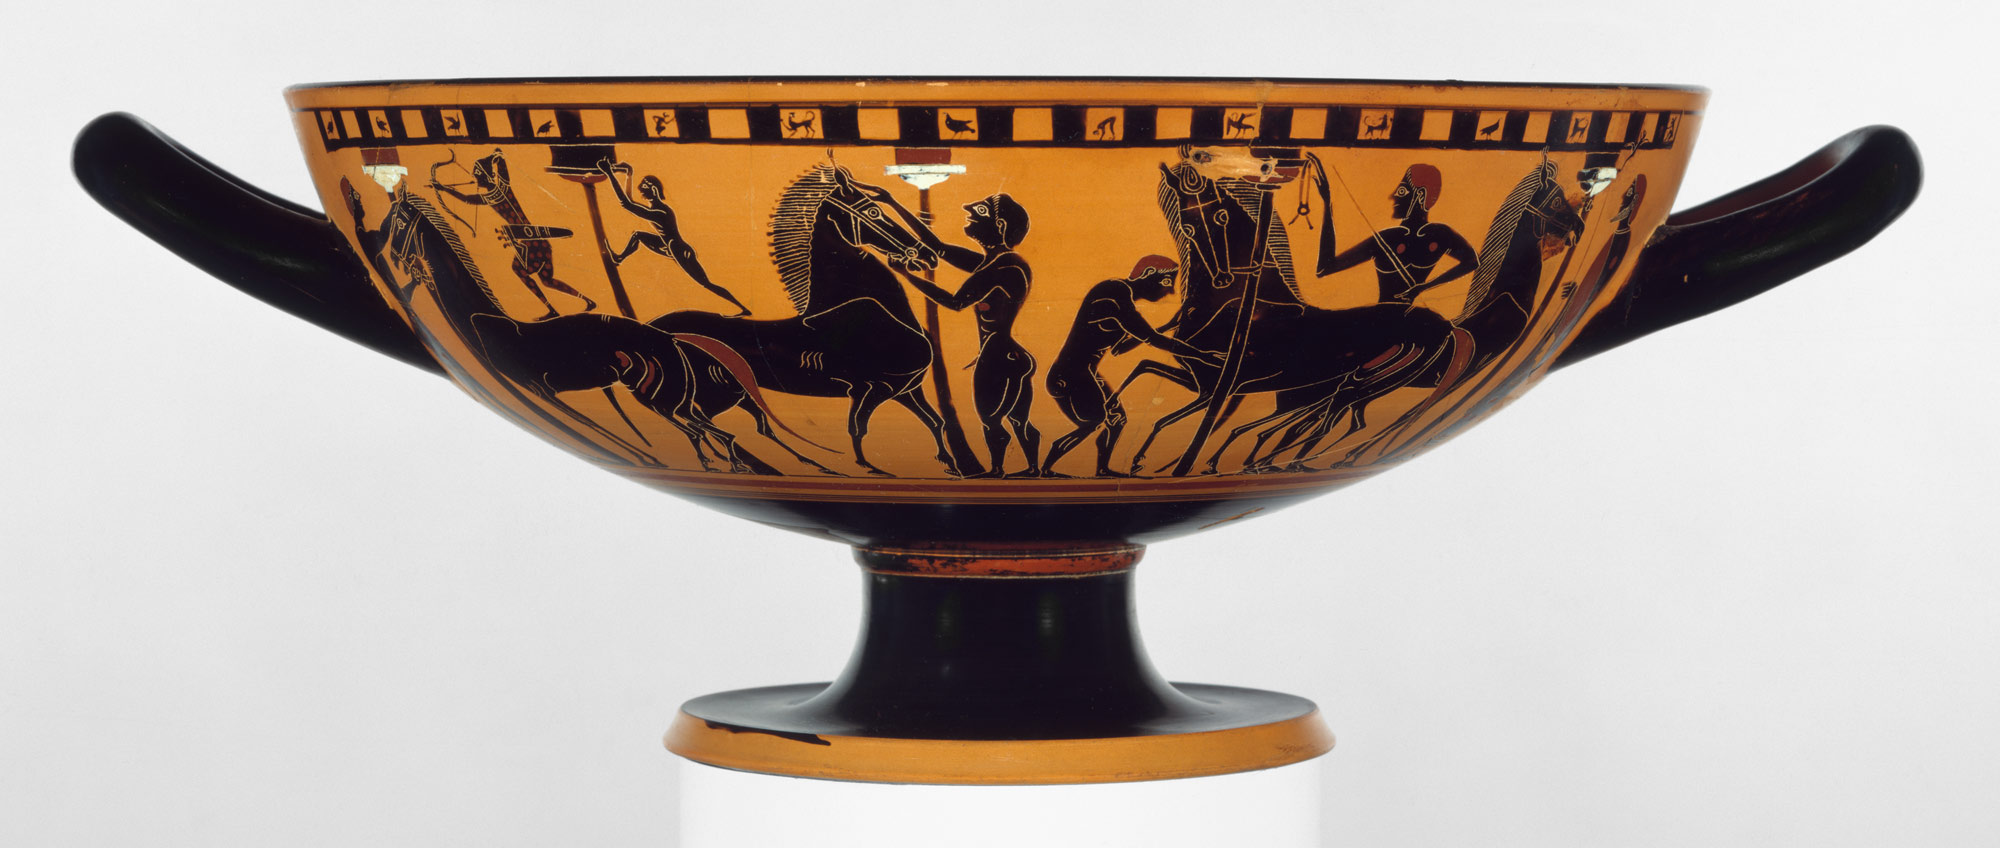 An Athenian painted vase. Photo courtesy of The Metropolitan Museum of Art.